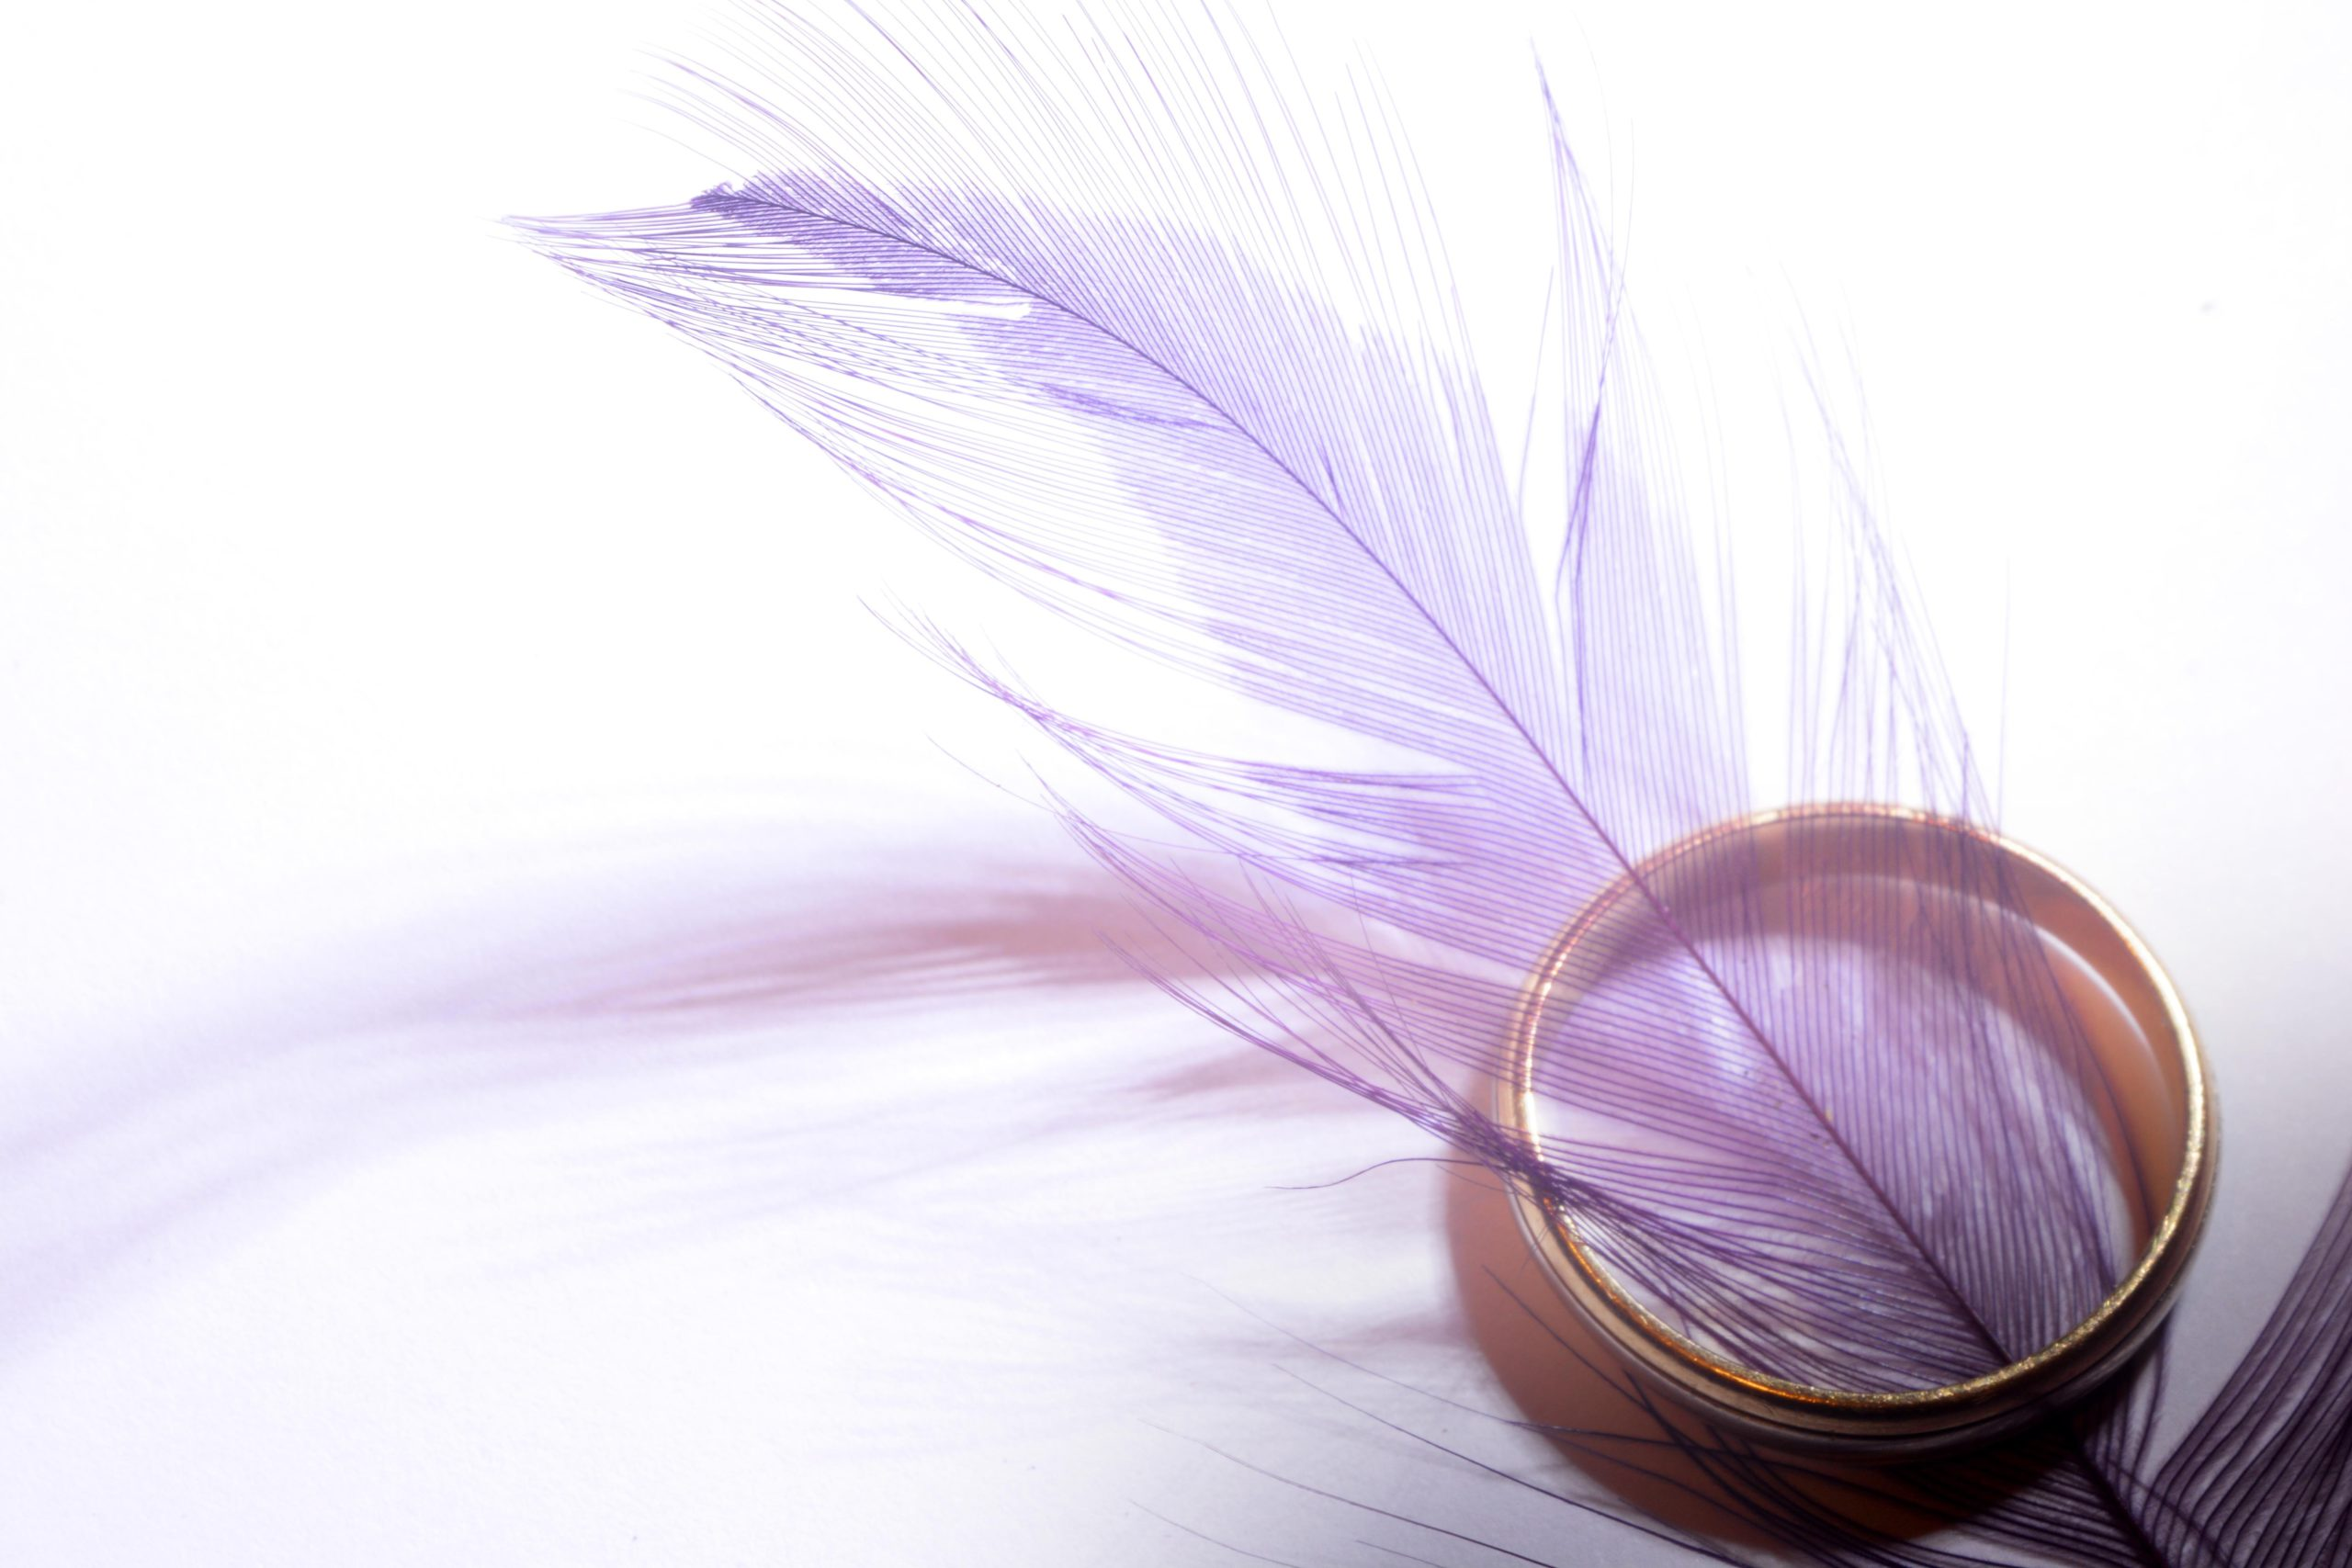 wedding-ring-feathers-closeup-9798